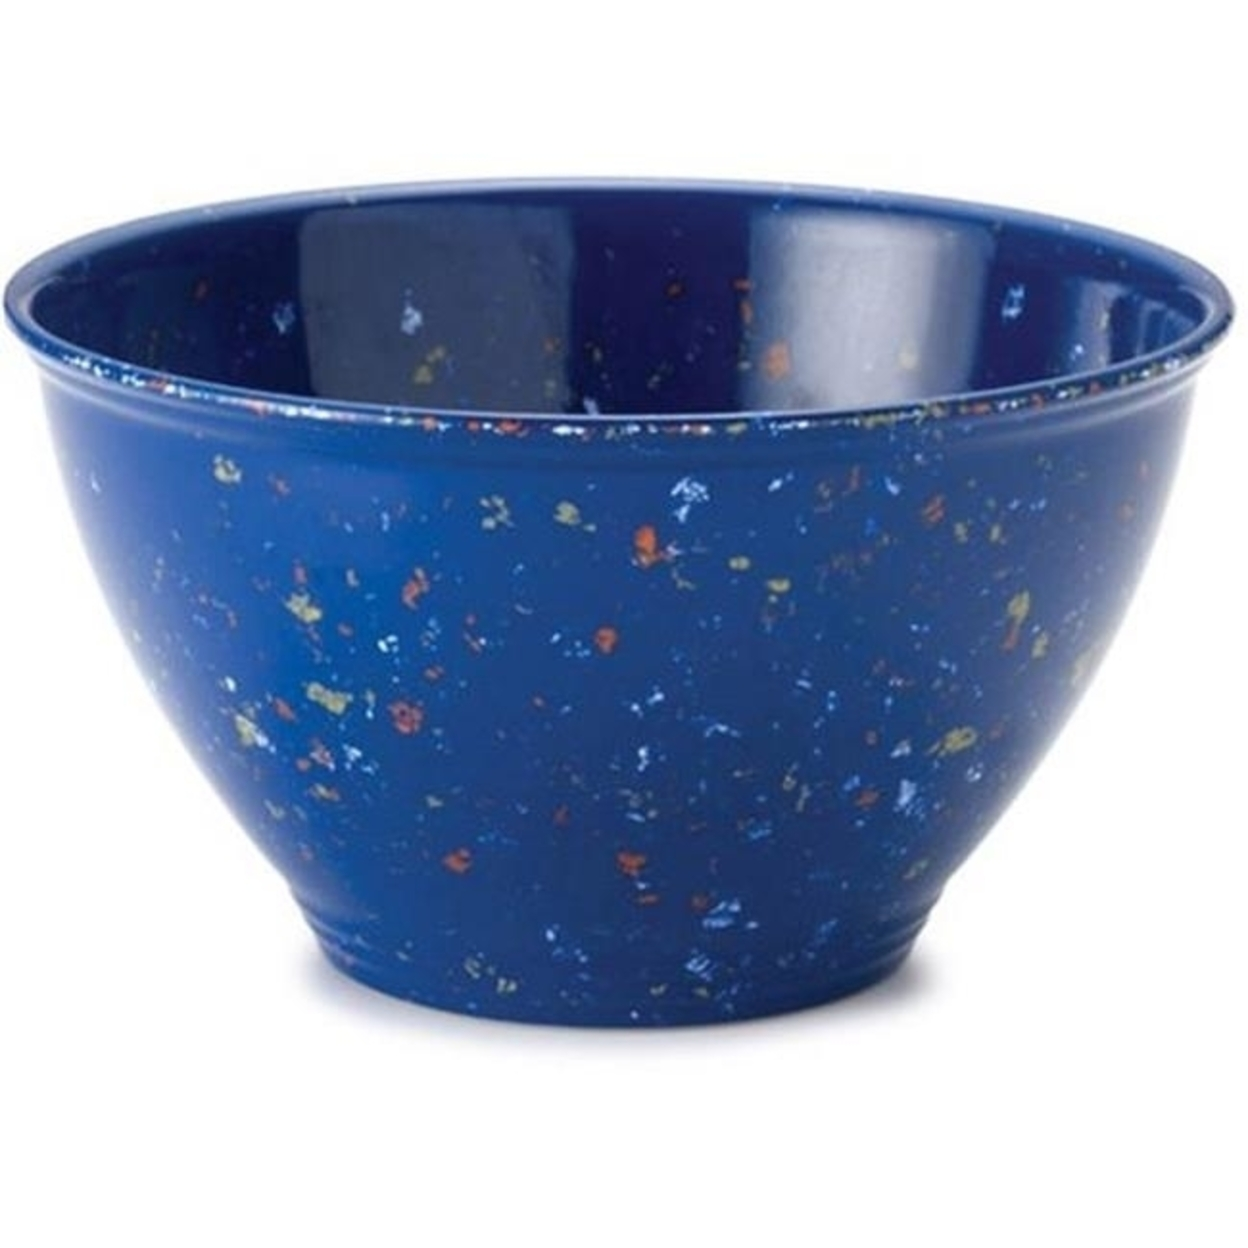 Rachael Ray 56661 Garbage Bowl with Rubber Foot - Blue - Blue 5a3c055a2a00e4310f152e9f